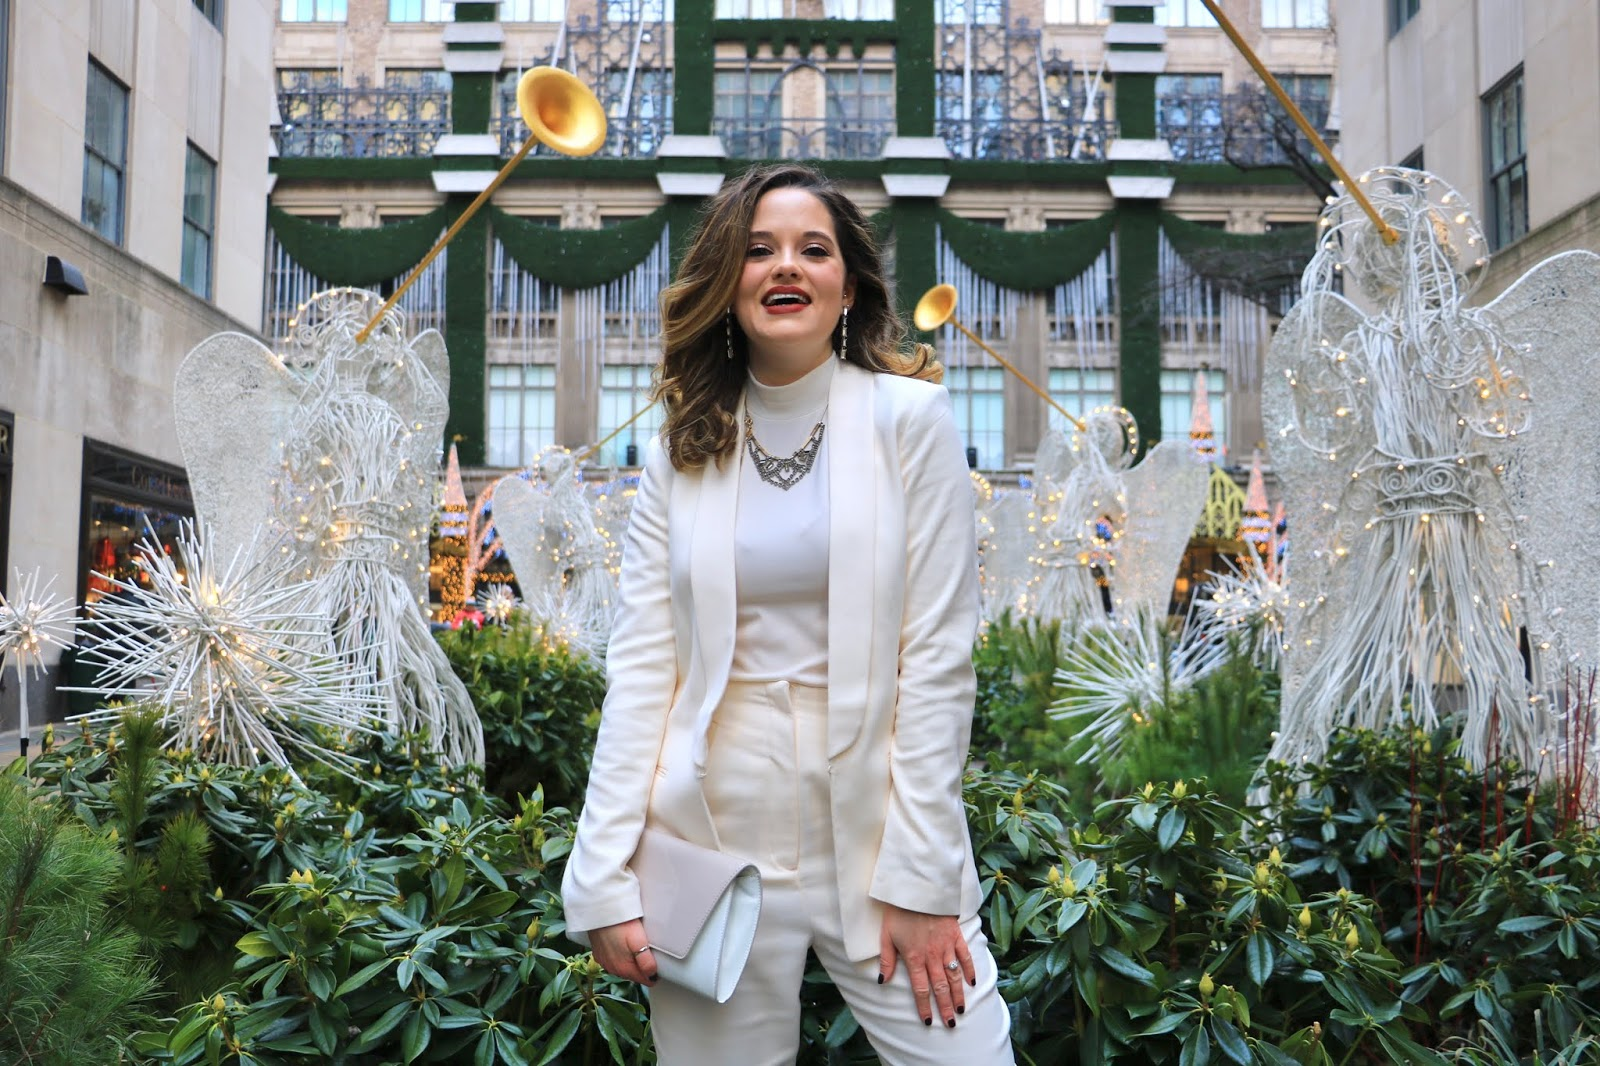 Nyc fashion blogger Kathleen Harper's photo shoot with the Rockefeller Center holiday decorations.